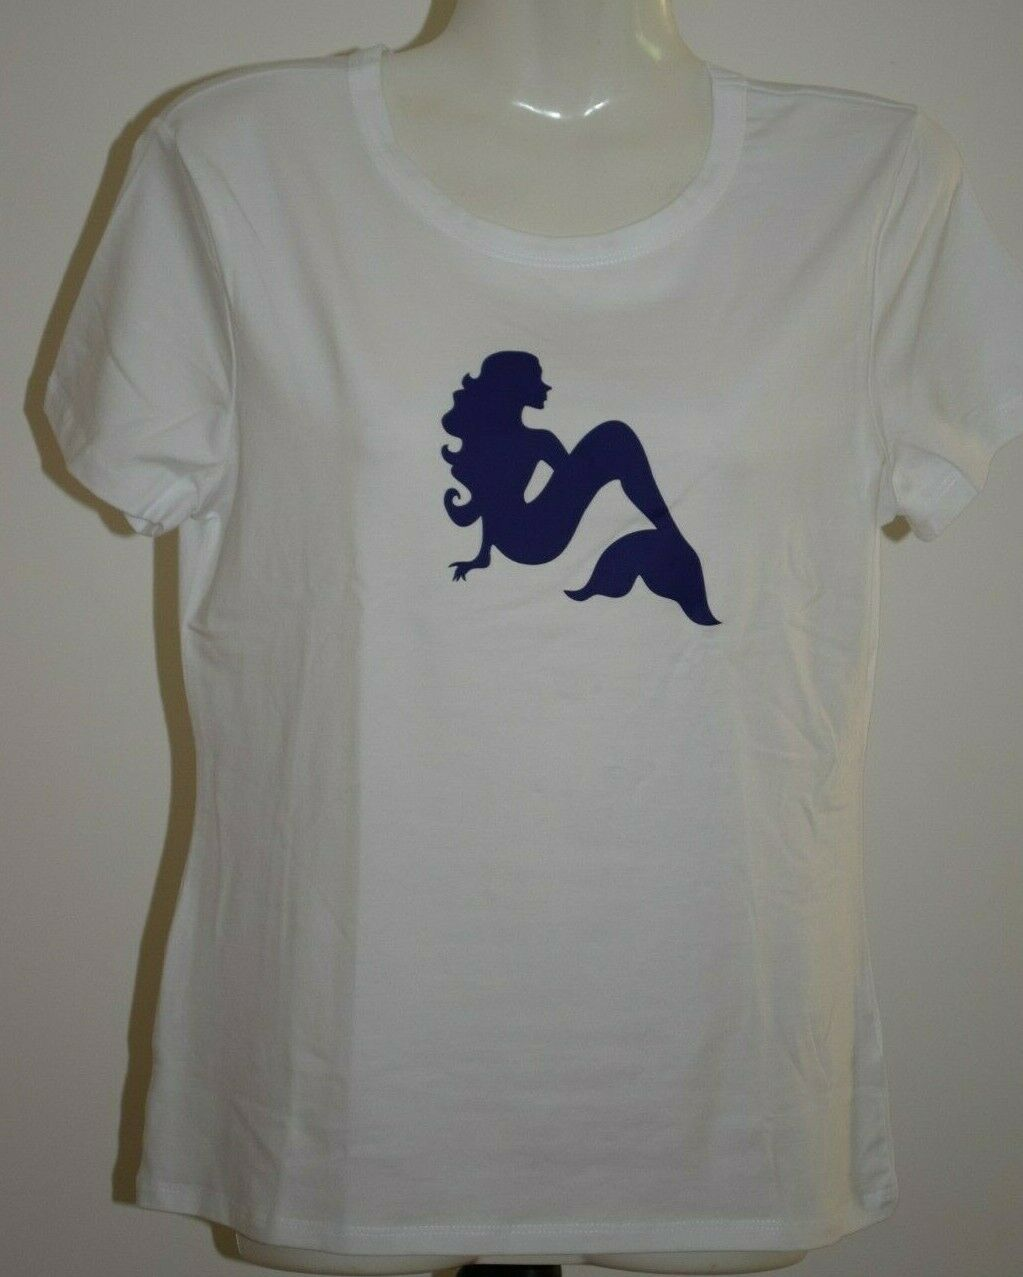 Mermaid t-shirt ladies top shirt witch pagan women's cotton small